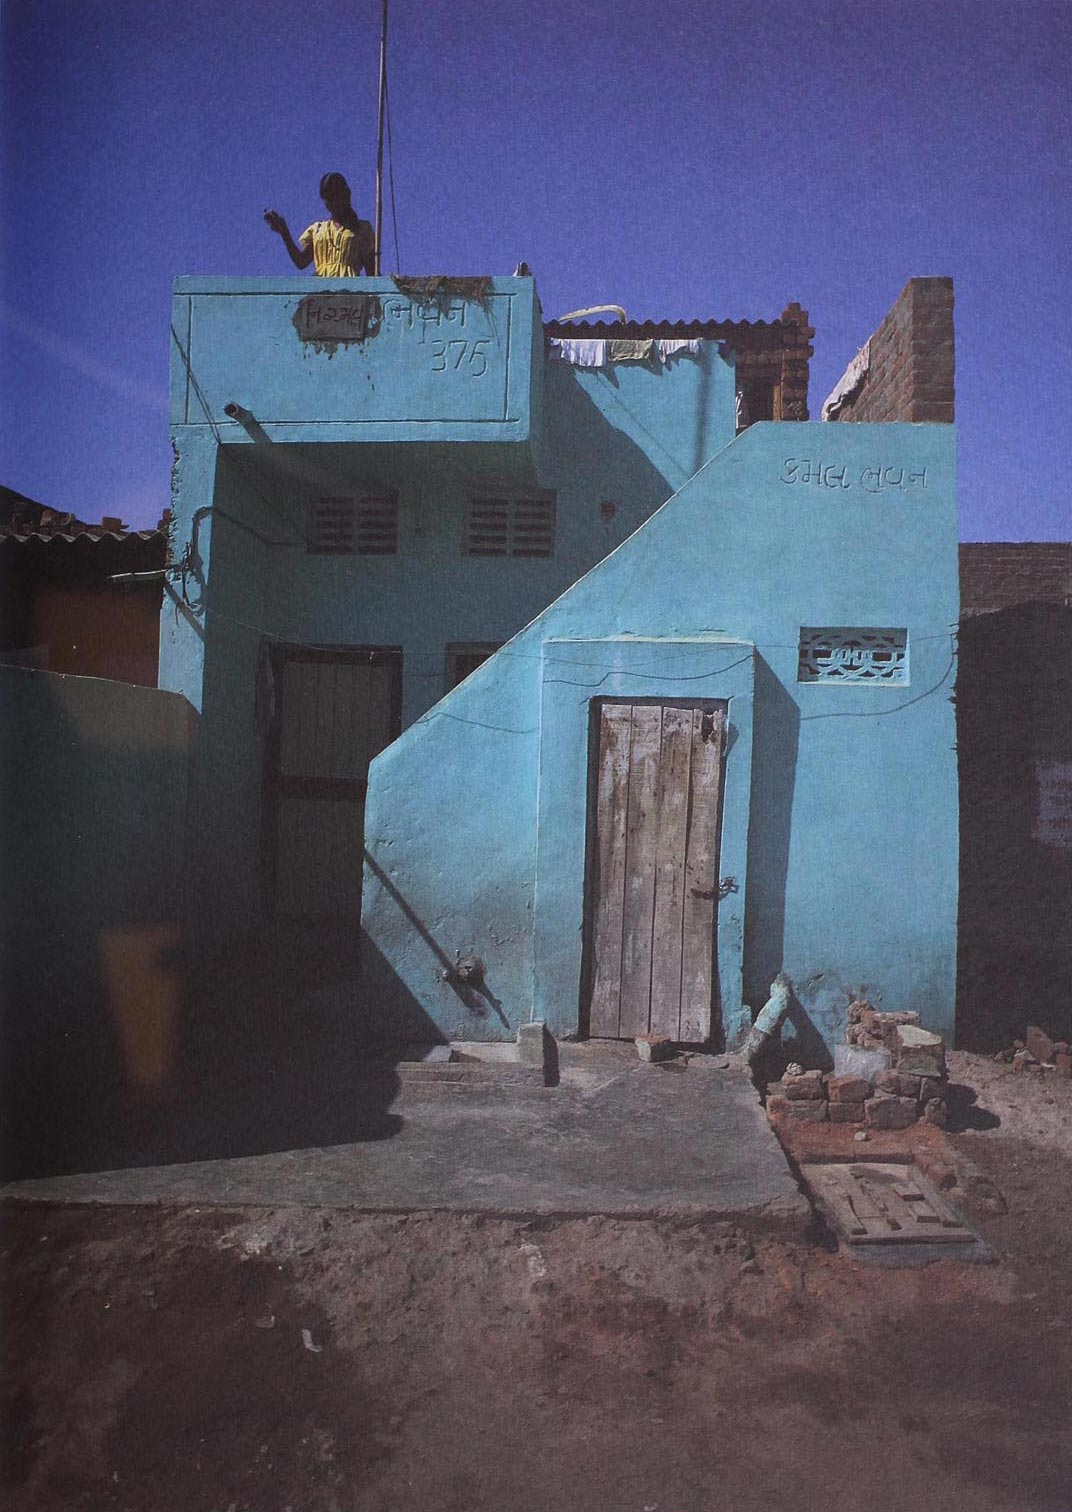 Palittana, India, 1988. Photograph by E.Sottsass